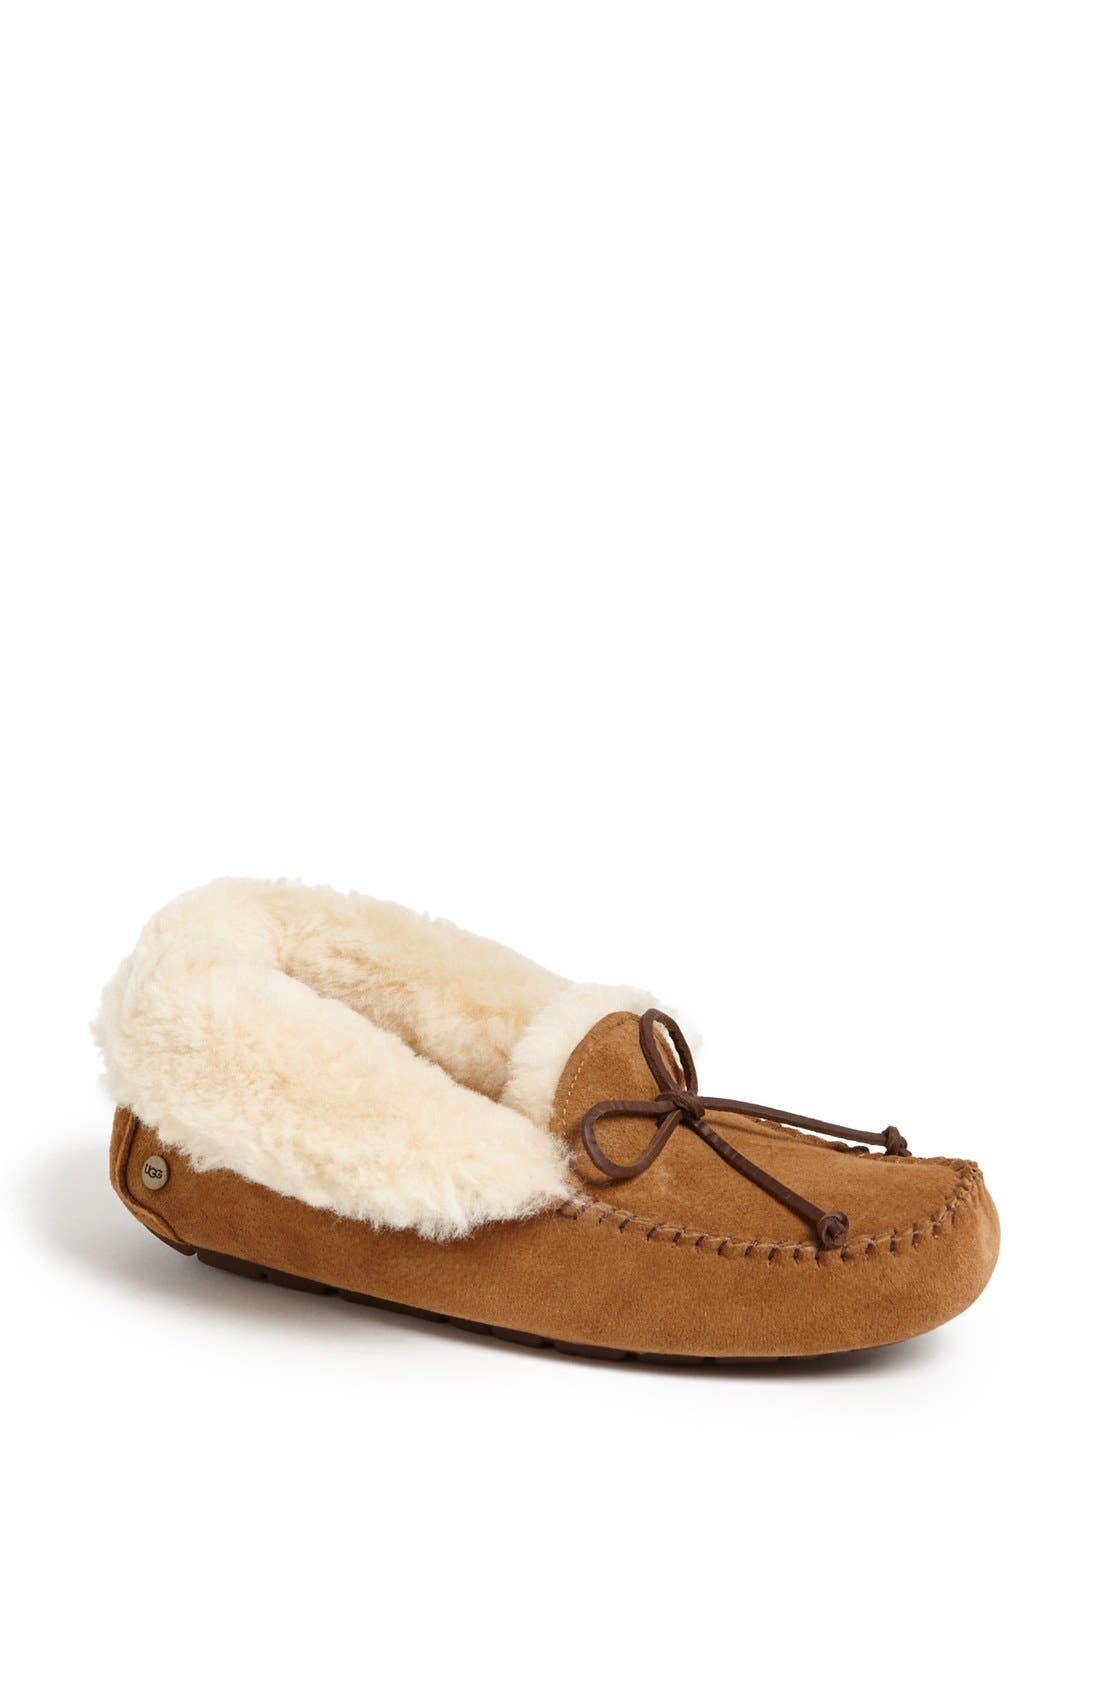 UGGpure<sup>™</sup> Alena Suede Slipper Bootie,                             Alternate thumbnail 2, color,                             CHESTNUT